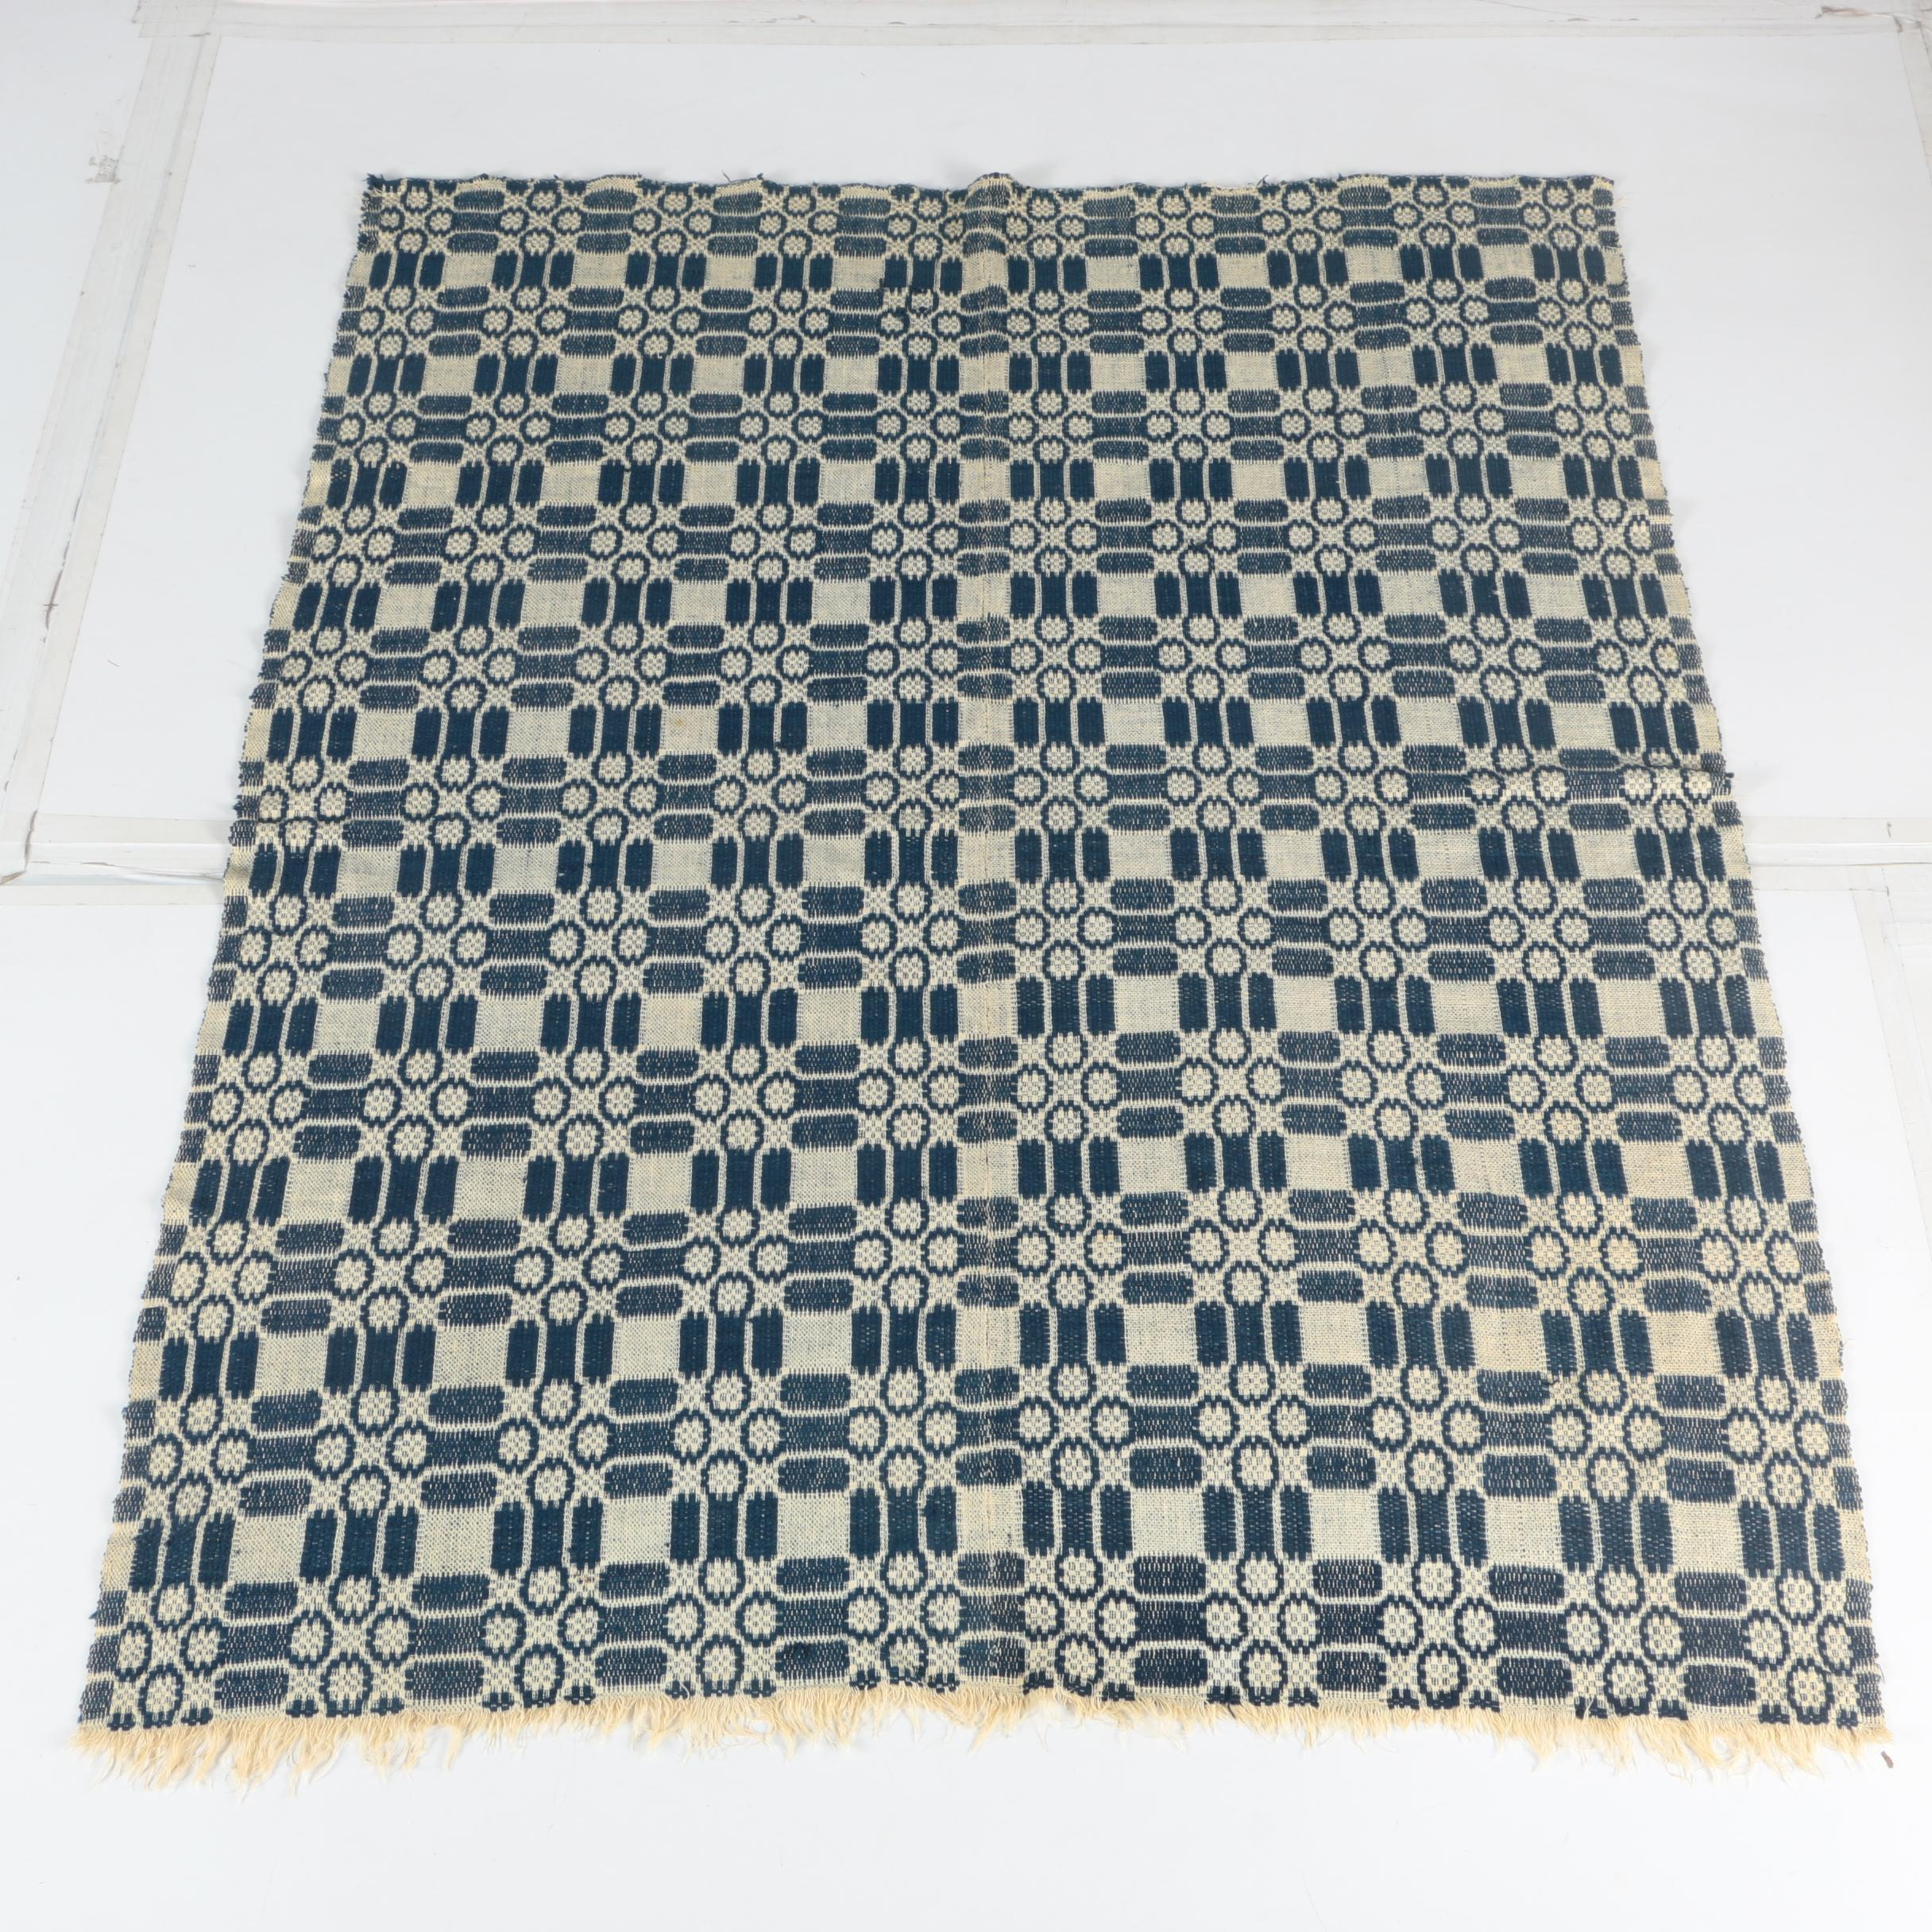 Antique Woven Wool Coverlet